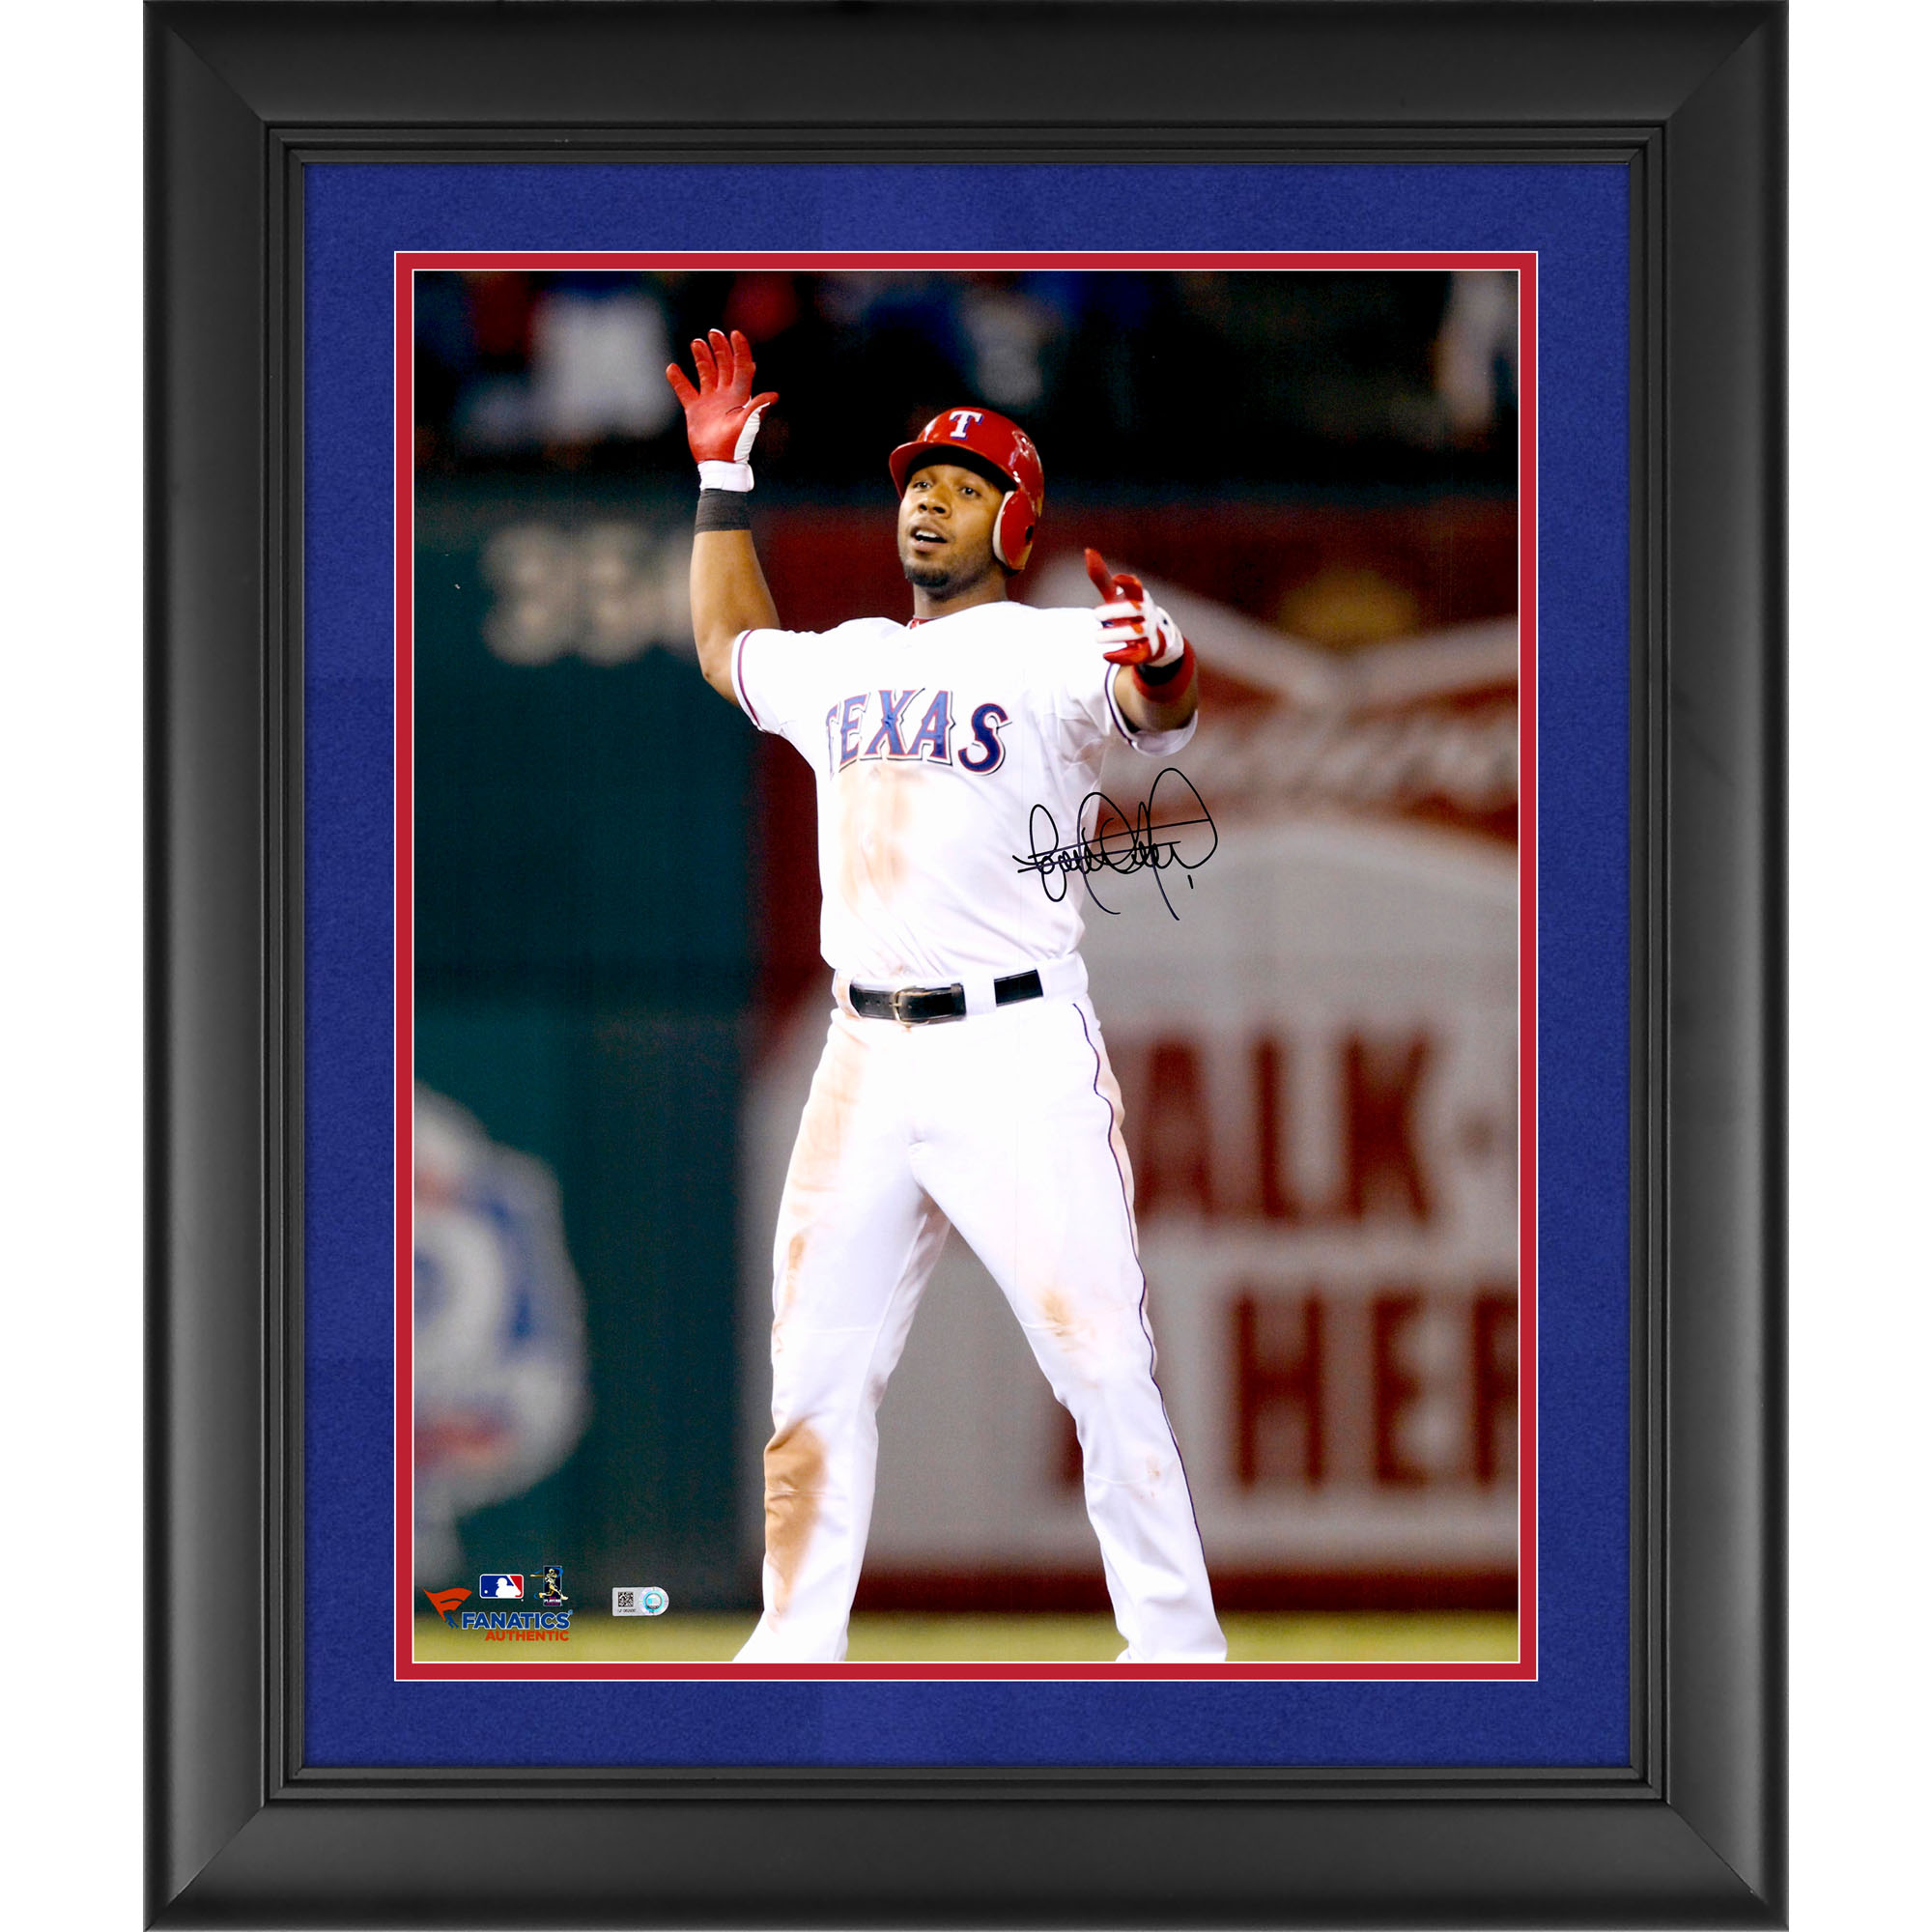 """Elvis Andrus Texas Rangers Fanatics Authentic Framed Autographed 16"""" x 20"""" Hands Up Standing Photograph - Suede Matting - No Size"""